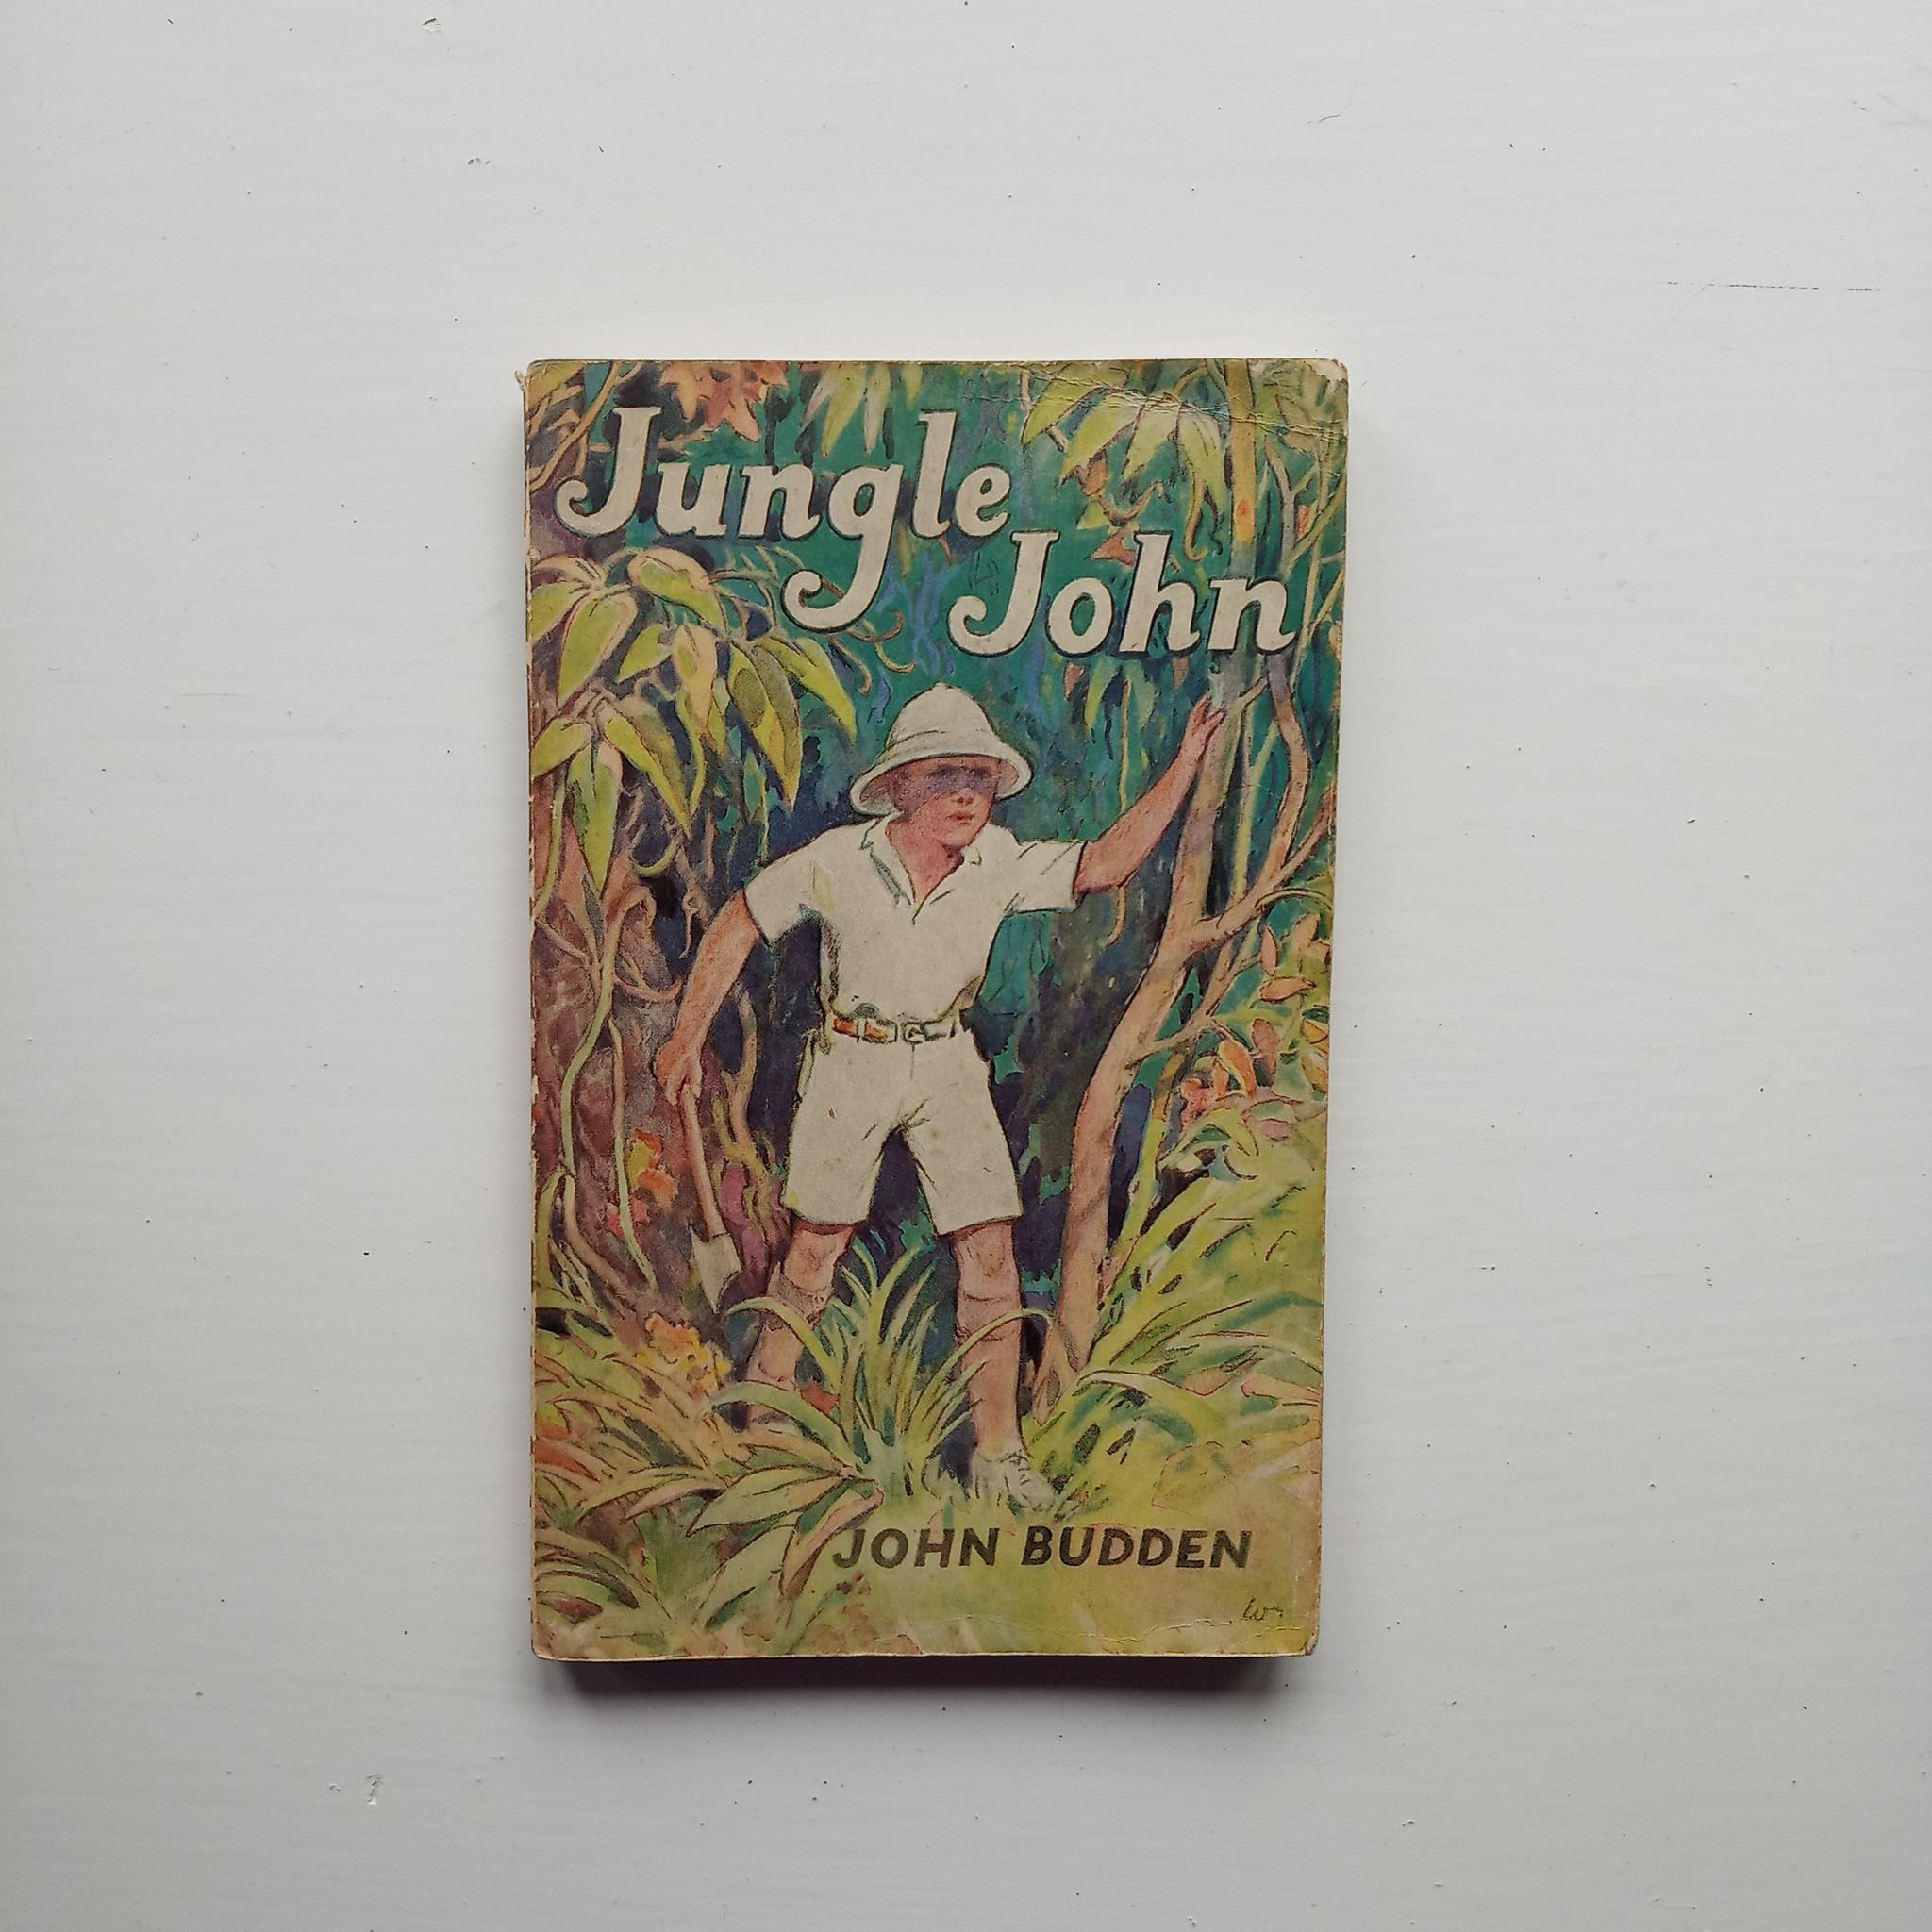 Jungle John by John Budden